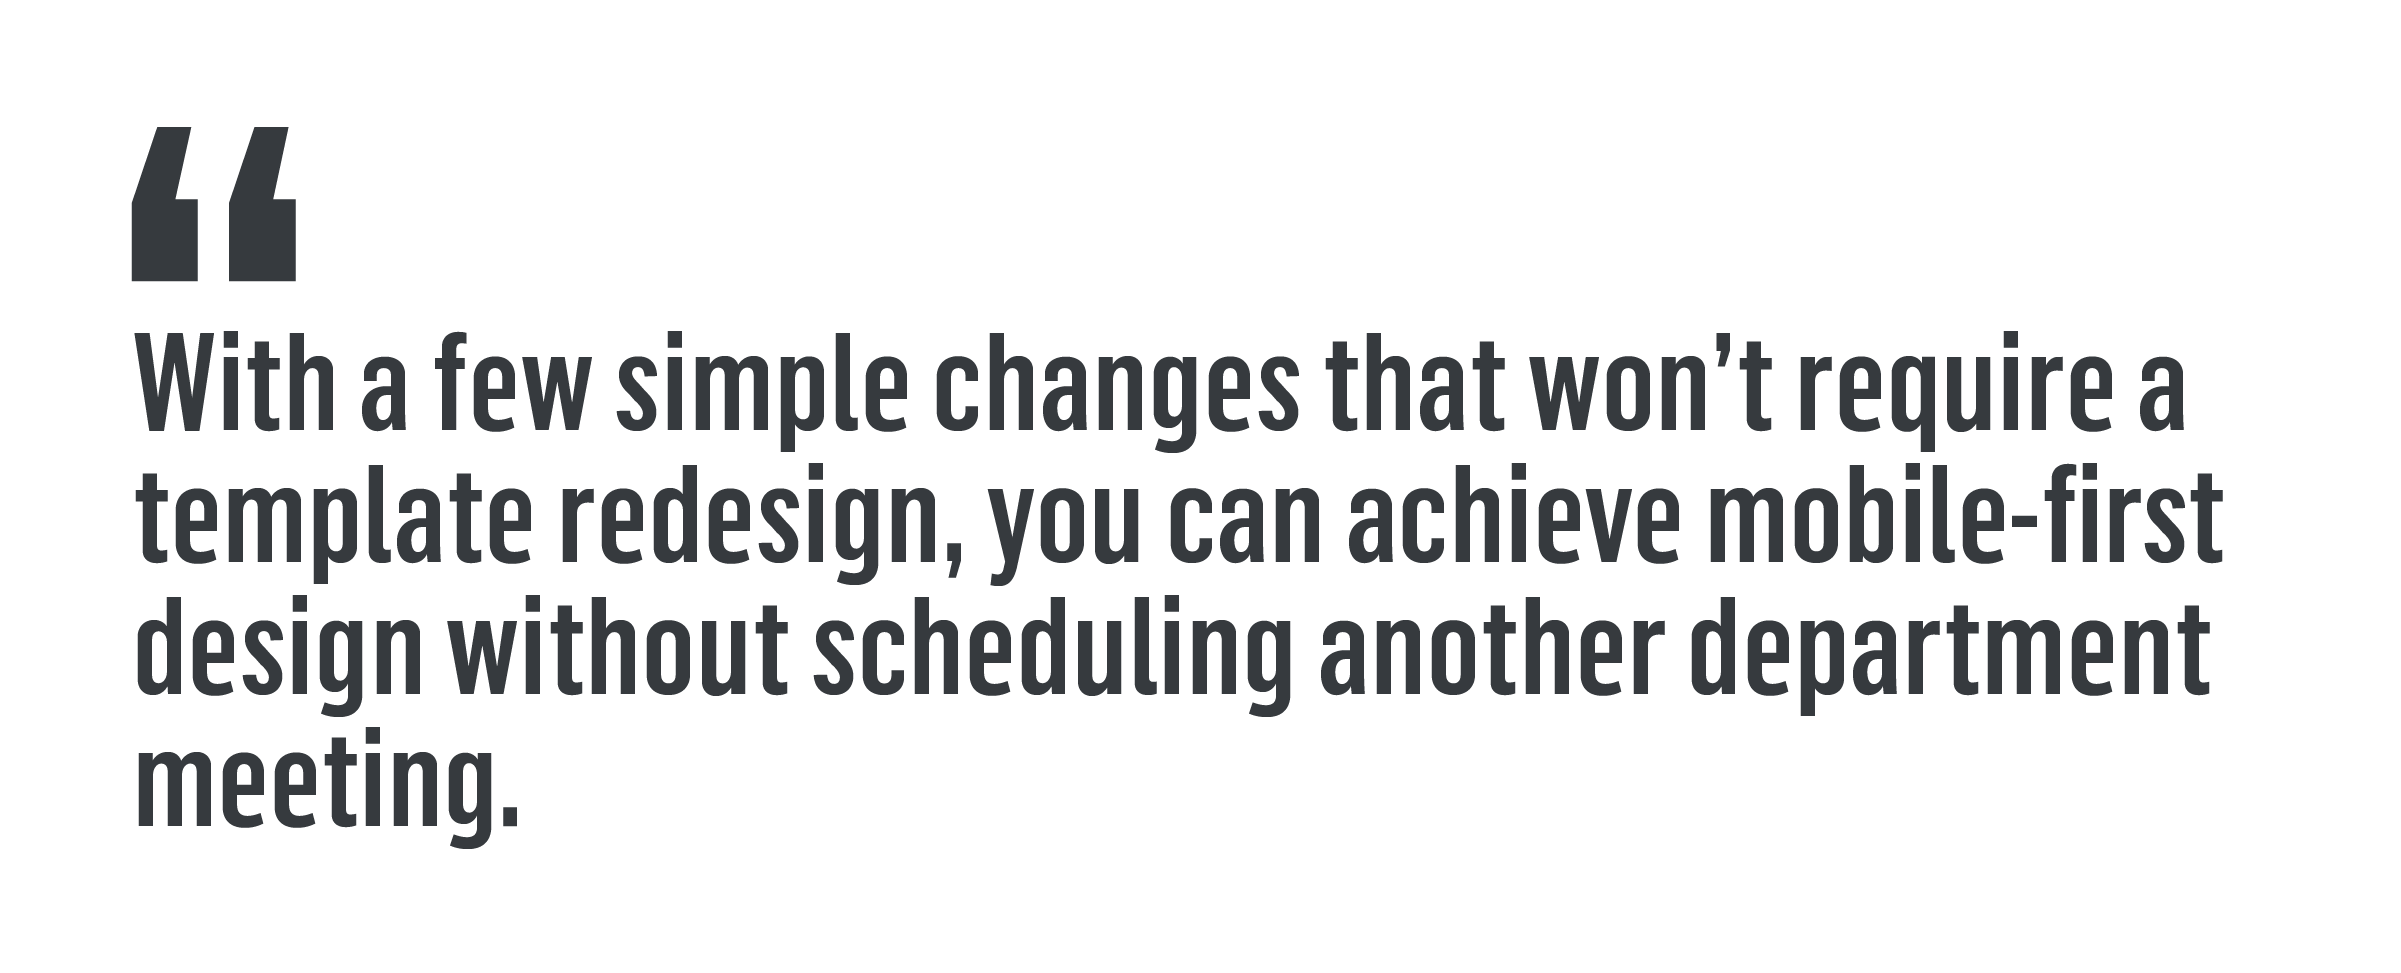 """With a few simple changes that won't require a template redesign, you can achieve mobile-first design without scheduling another department meeting."""